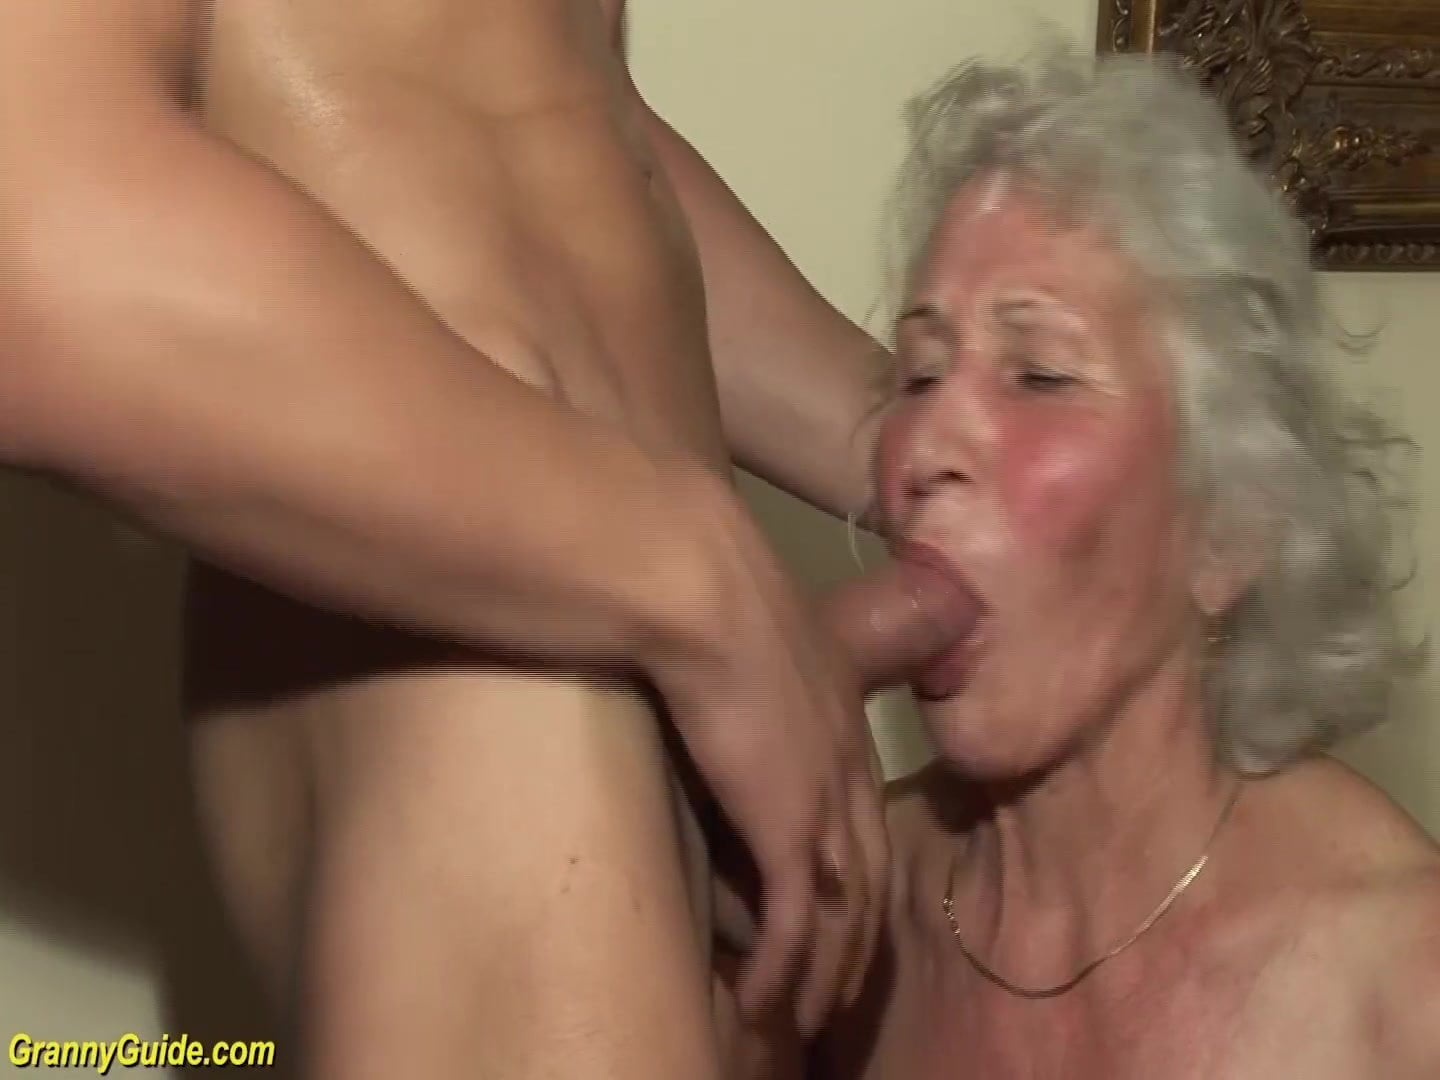 Hairy Granny In Her First Porn Video, Hd Porn 91 Xhamster-9800